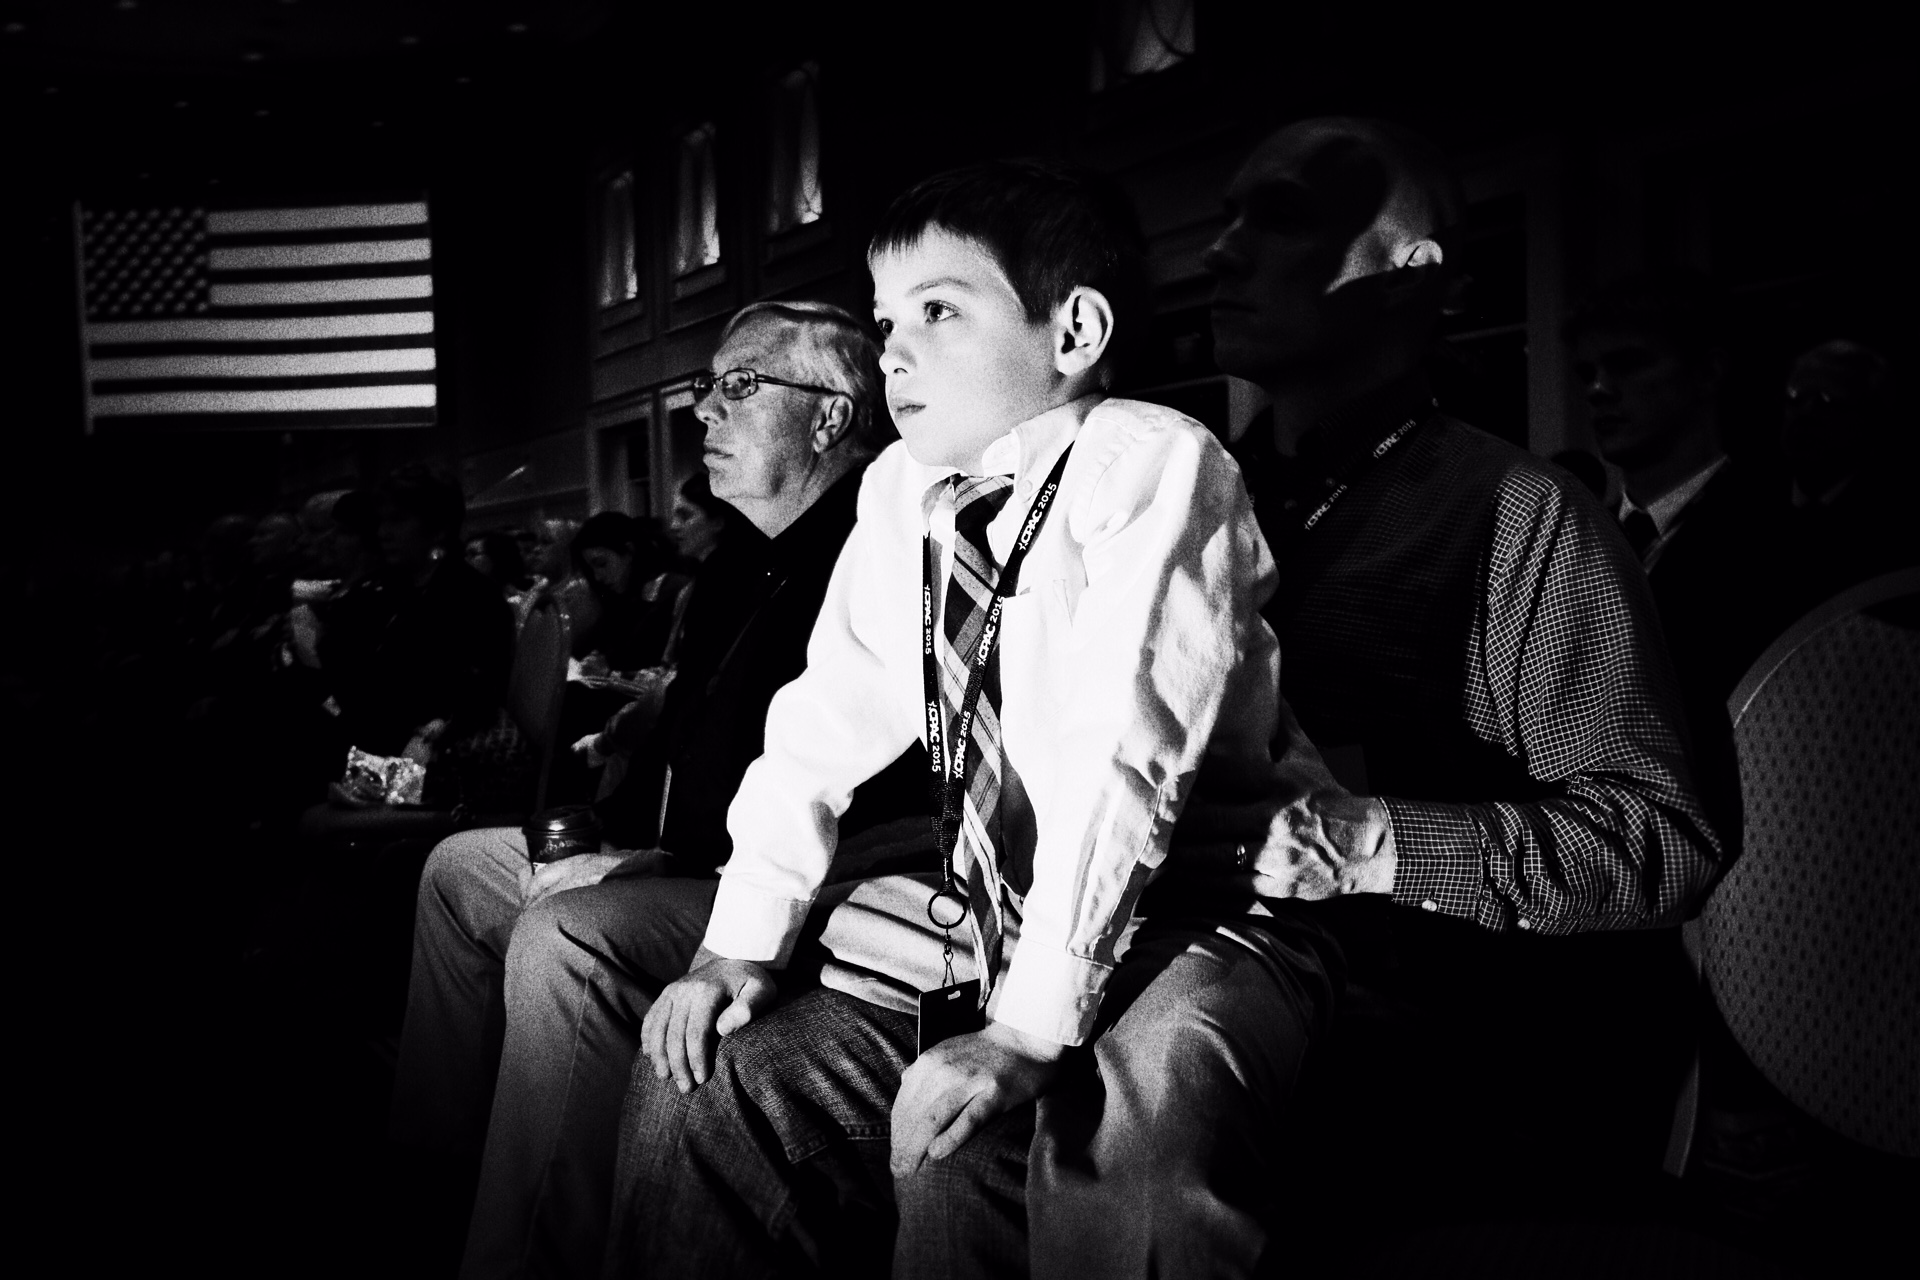 Nine year old Thomas H. from Virginia at his first CPAC in National Harbor, Md. on Feb. 27, 2015.